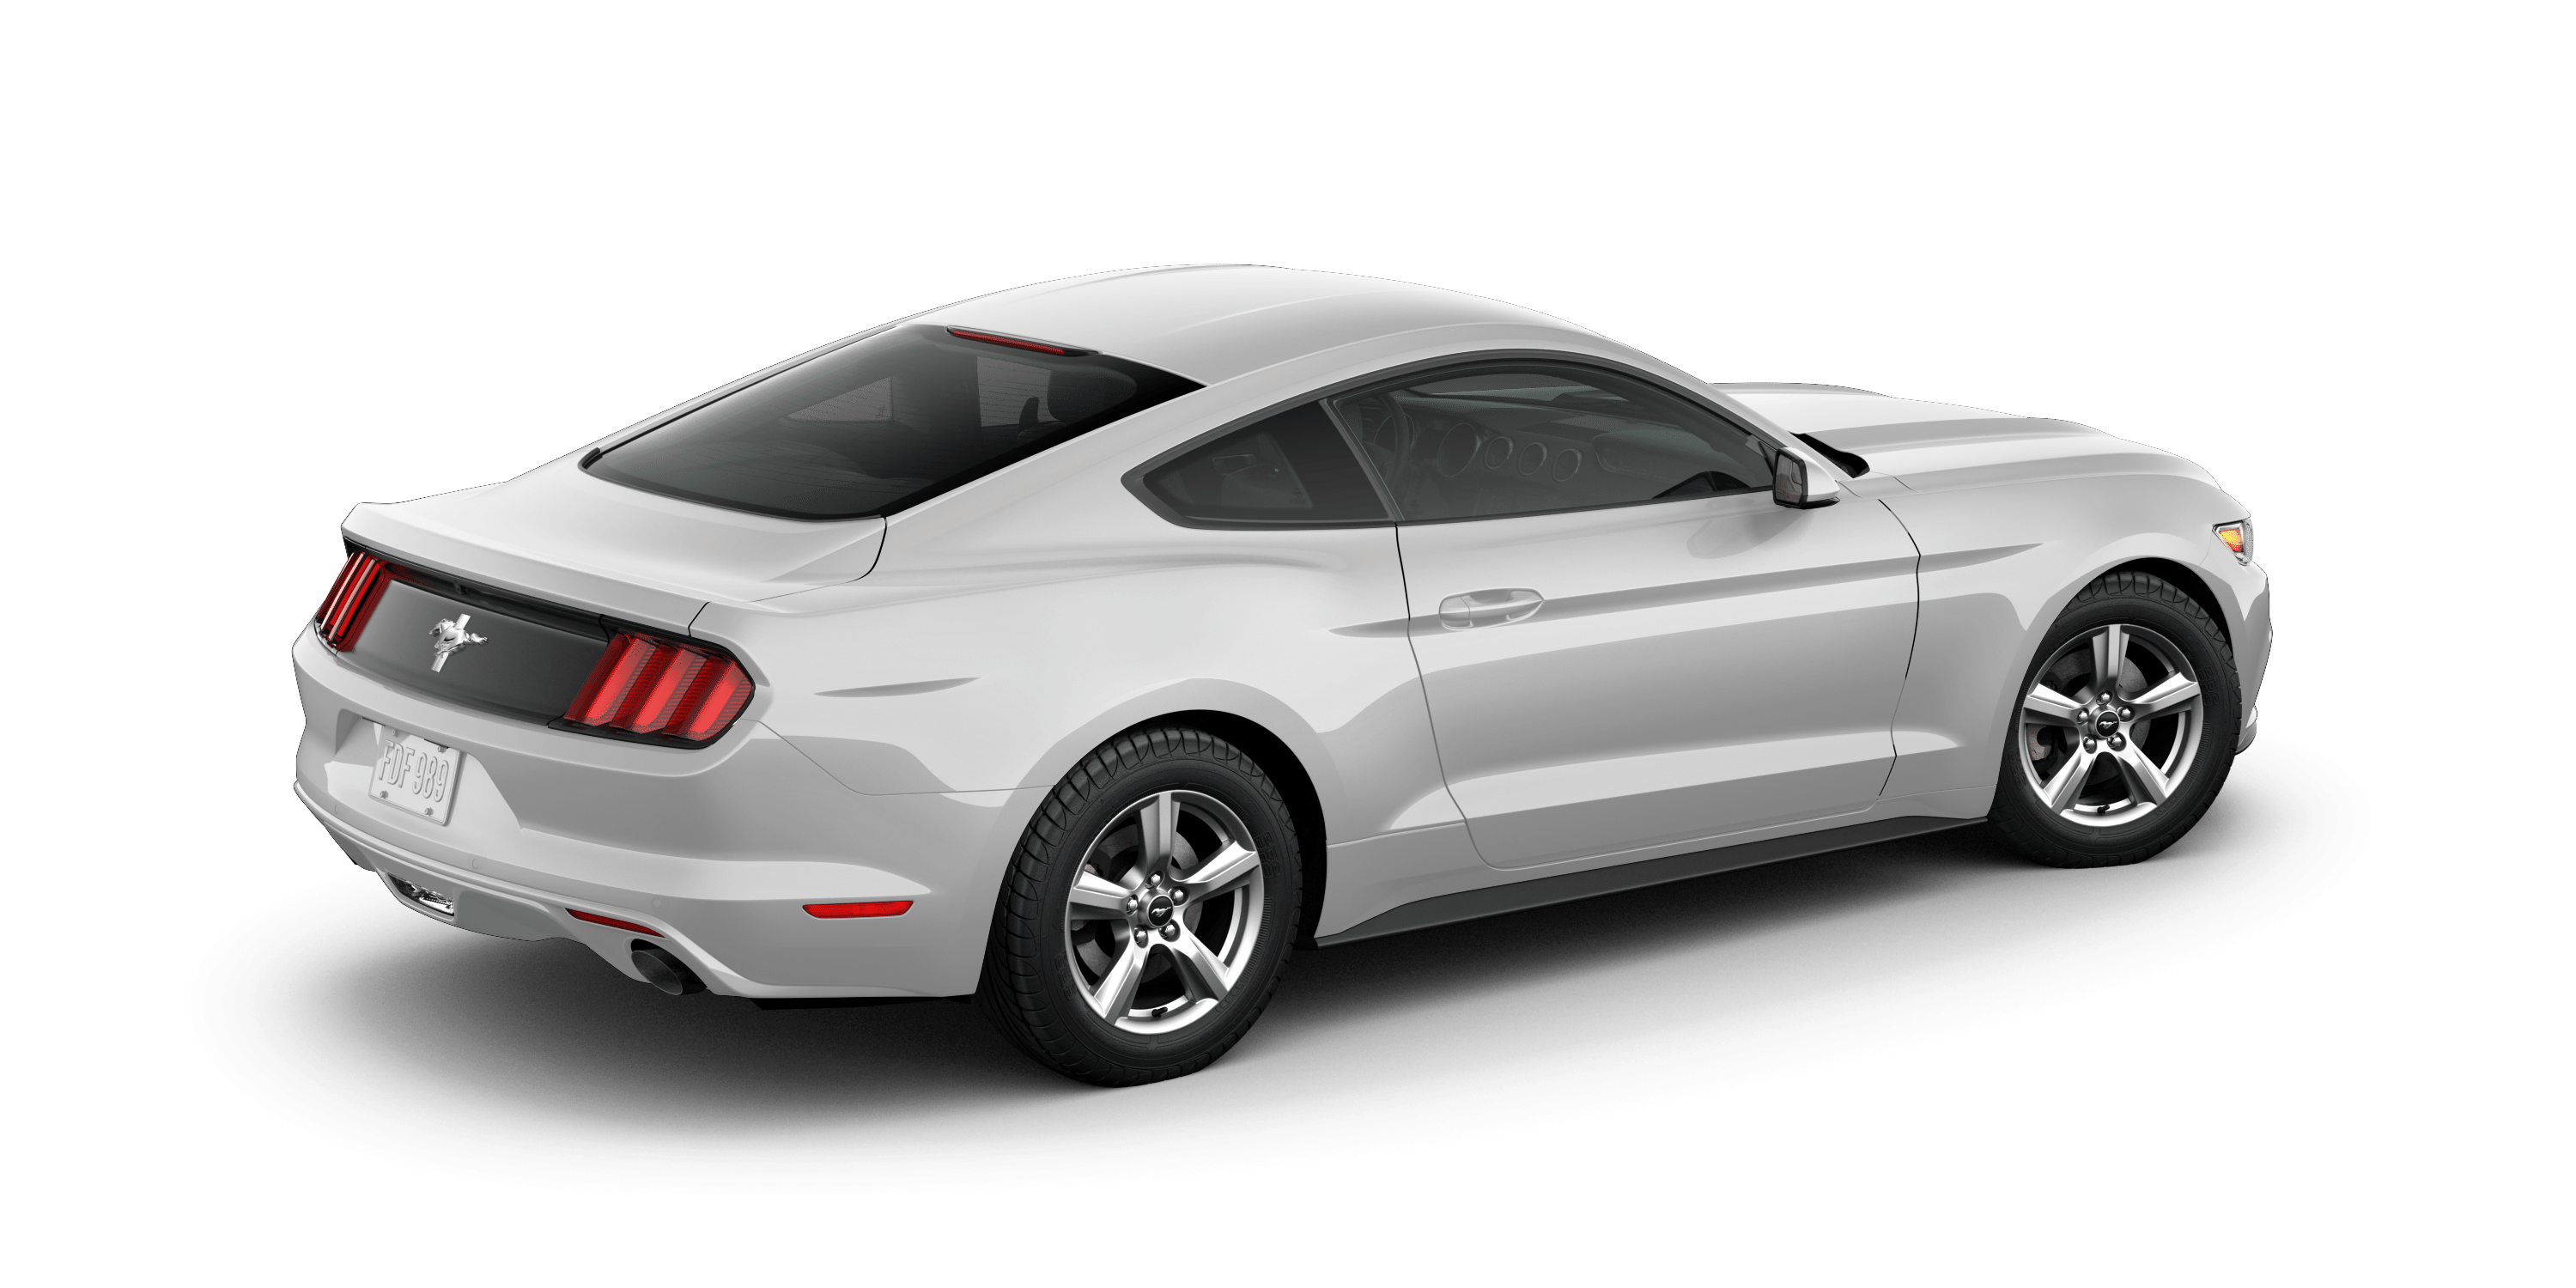 2017 ford mustang for sale in pittsburgh 1fa6p8am1h5297015 shults ford harmarville. Black Bedroom Furniture Sets. Home Design Ideas